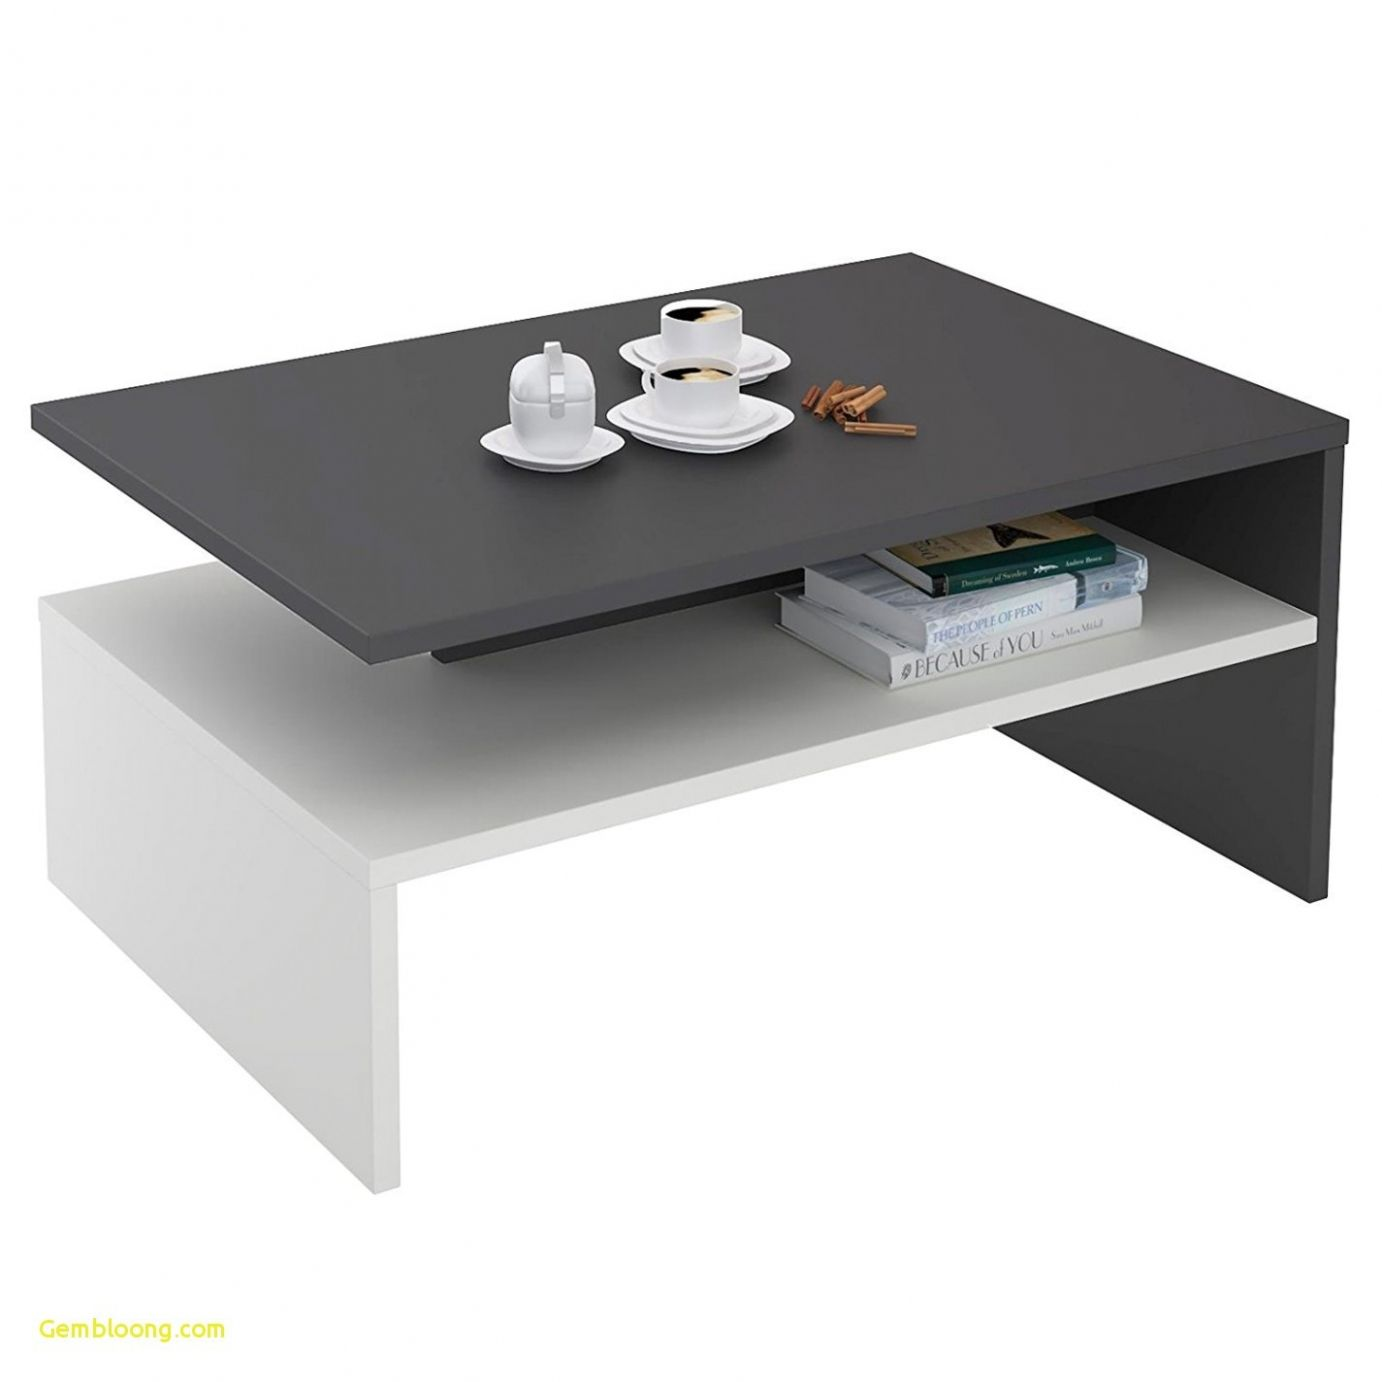 More Than 30 Cute Industrial Side Table Coffee Table Coffee Table Wood Coffee Table White [ 1382 x 1382 Pixel ]